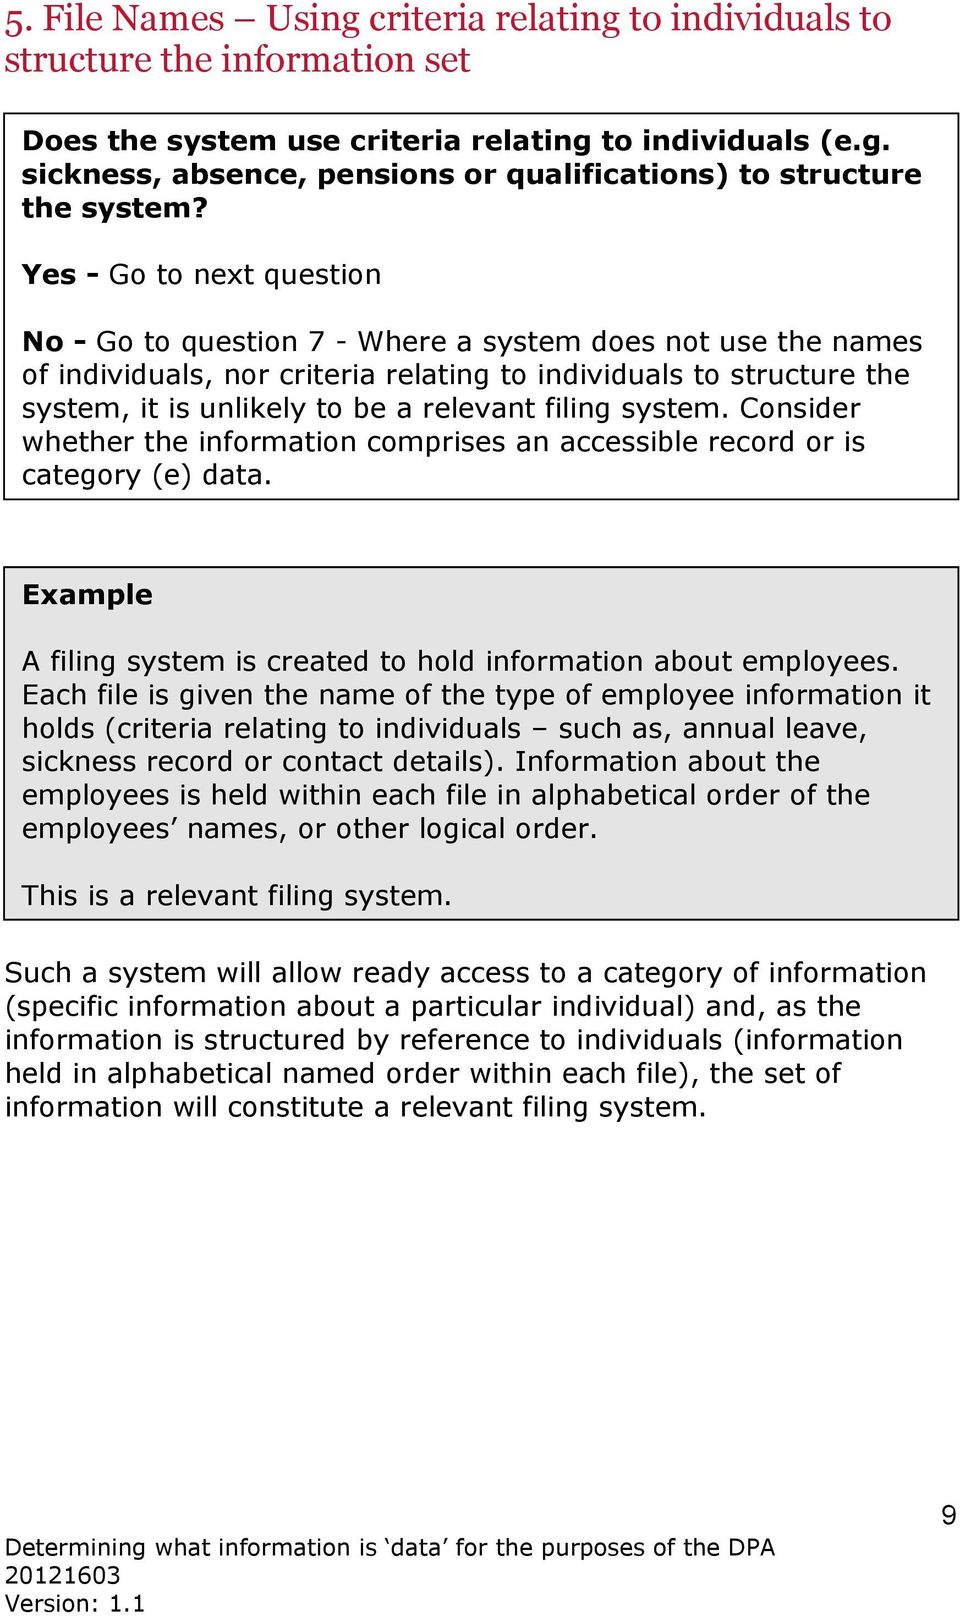 filing system. Consider whether the information comprises an accessible record or is category (e) data. Example A filing system is created to hold information about employees.